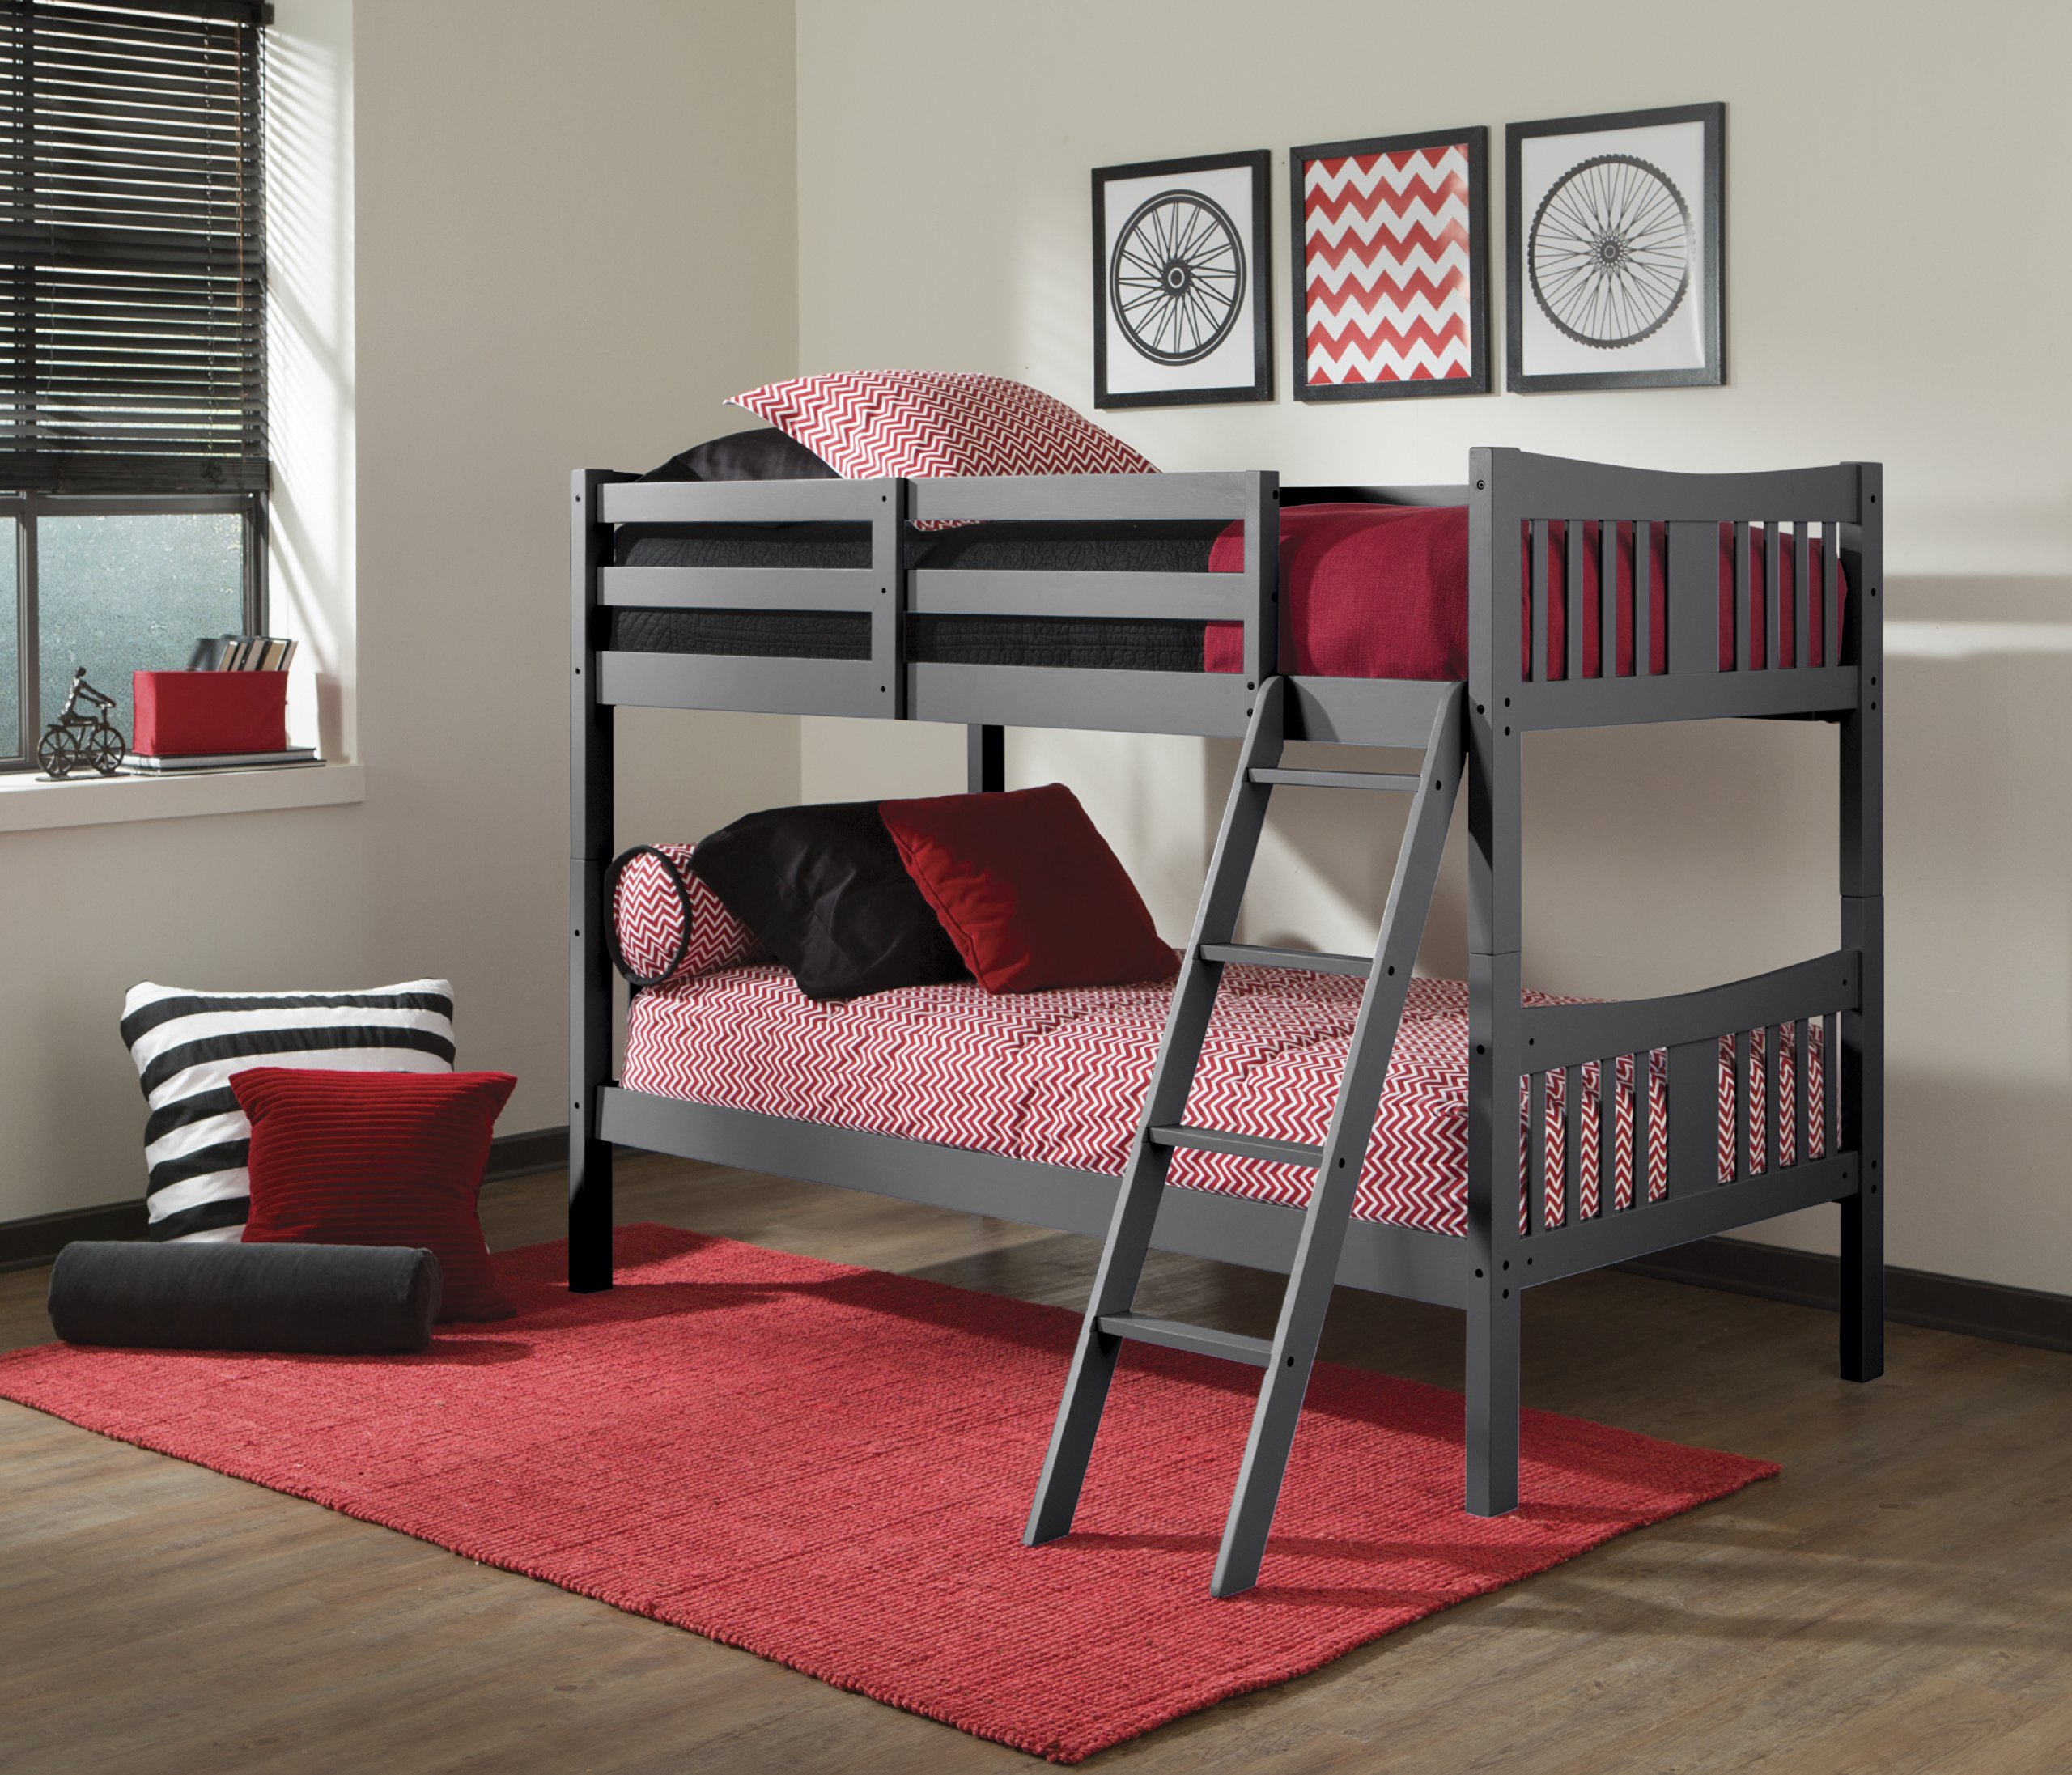 Storkcraft Caribou Solid Hardwood Twin Bunk Bed, Gray Twin Bunk Beds for Kids with Ladder and Safety Rail by Stork Craft